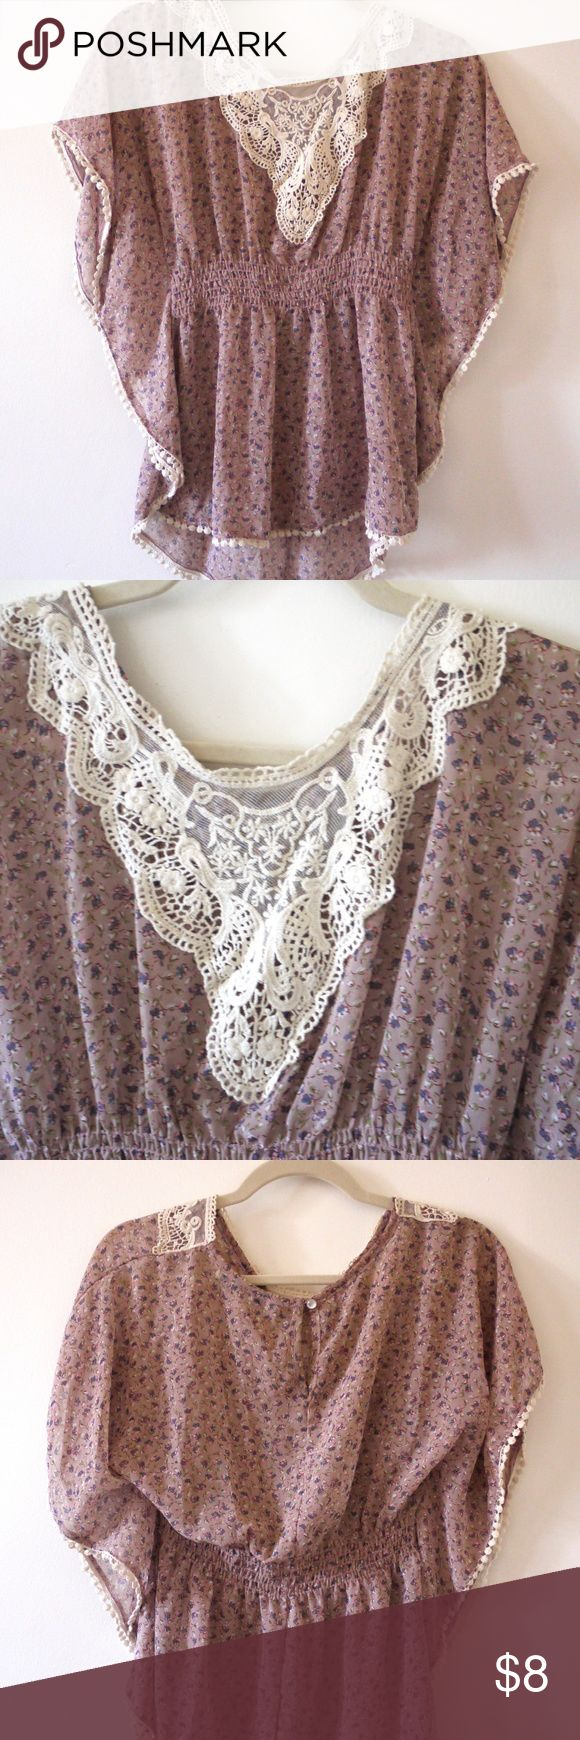 Purple Forever 21 Boho Blouse This cute Forever 21 top is perfect for a morning at a beachy farmers market. It has an easy breezy boho look. The sleeves are fluttery and the waist is tapered, with a cute lace pattern on the top. I'd say the color is lavender, but it does look more beige/neutral in certain lights. It's sheer so you'll want to wear a cami or bralette underneath. Size small, only worn a few times. :) Forever 21 Tops Blouses